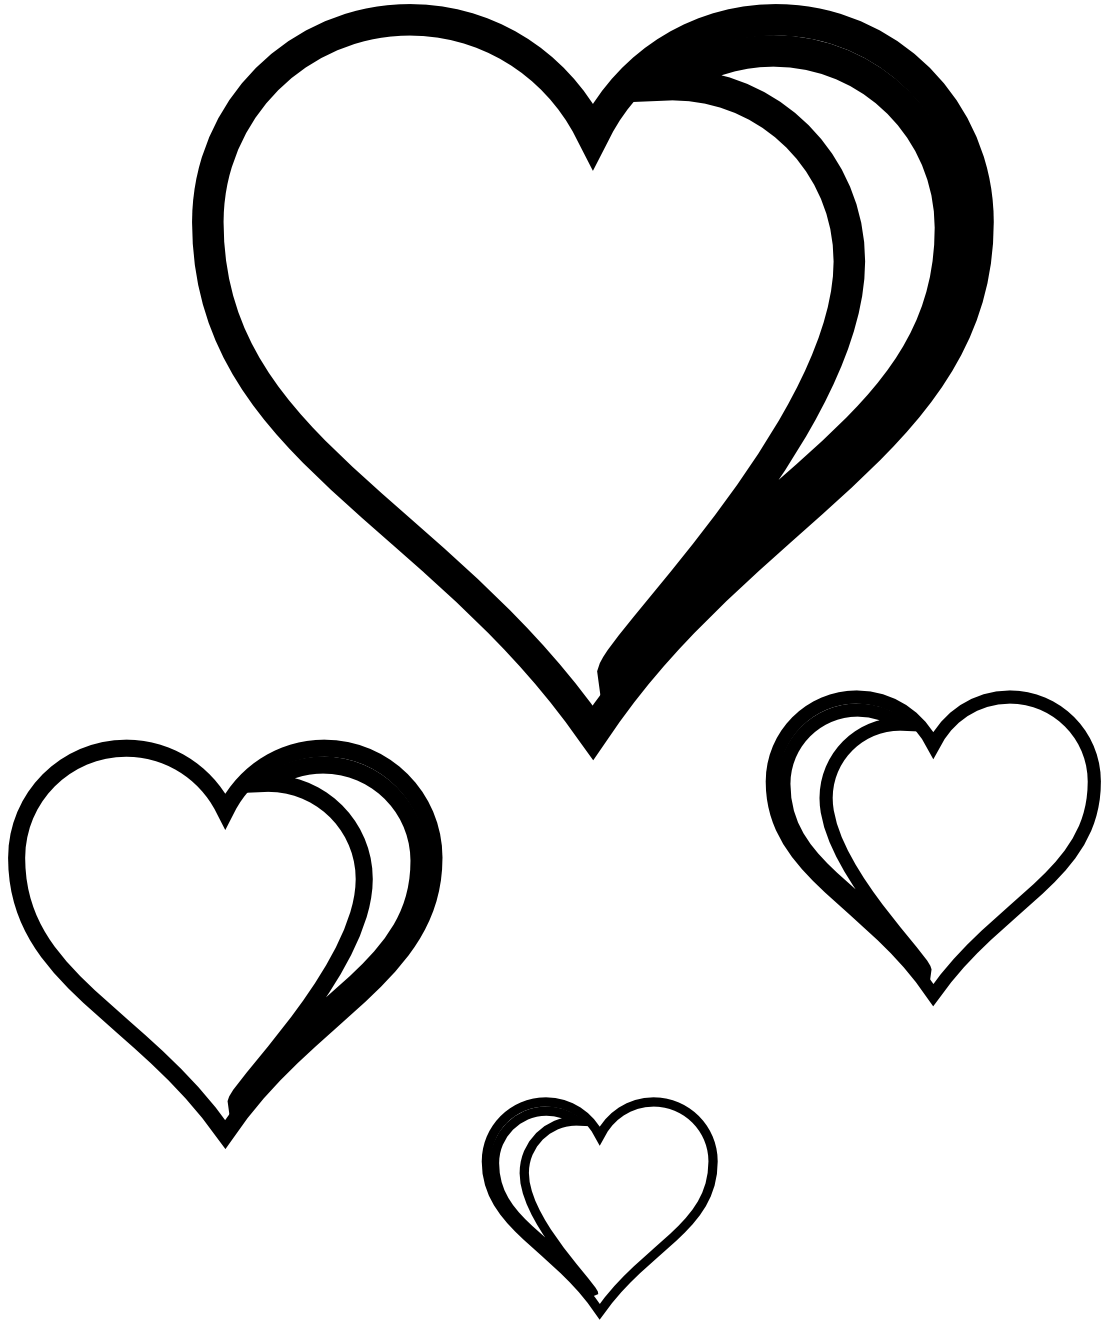 hight resolution of black heart love heart clipart black and white clipartfest